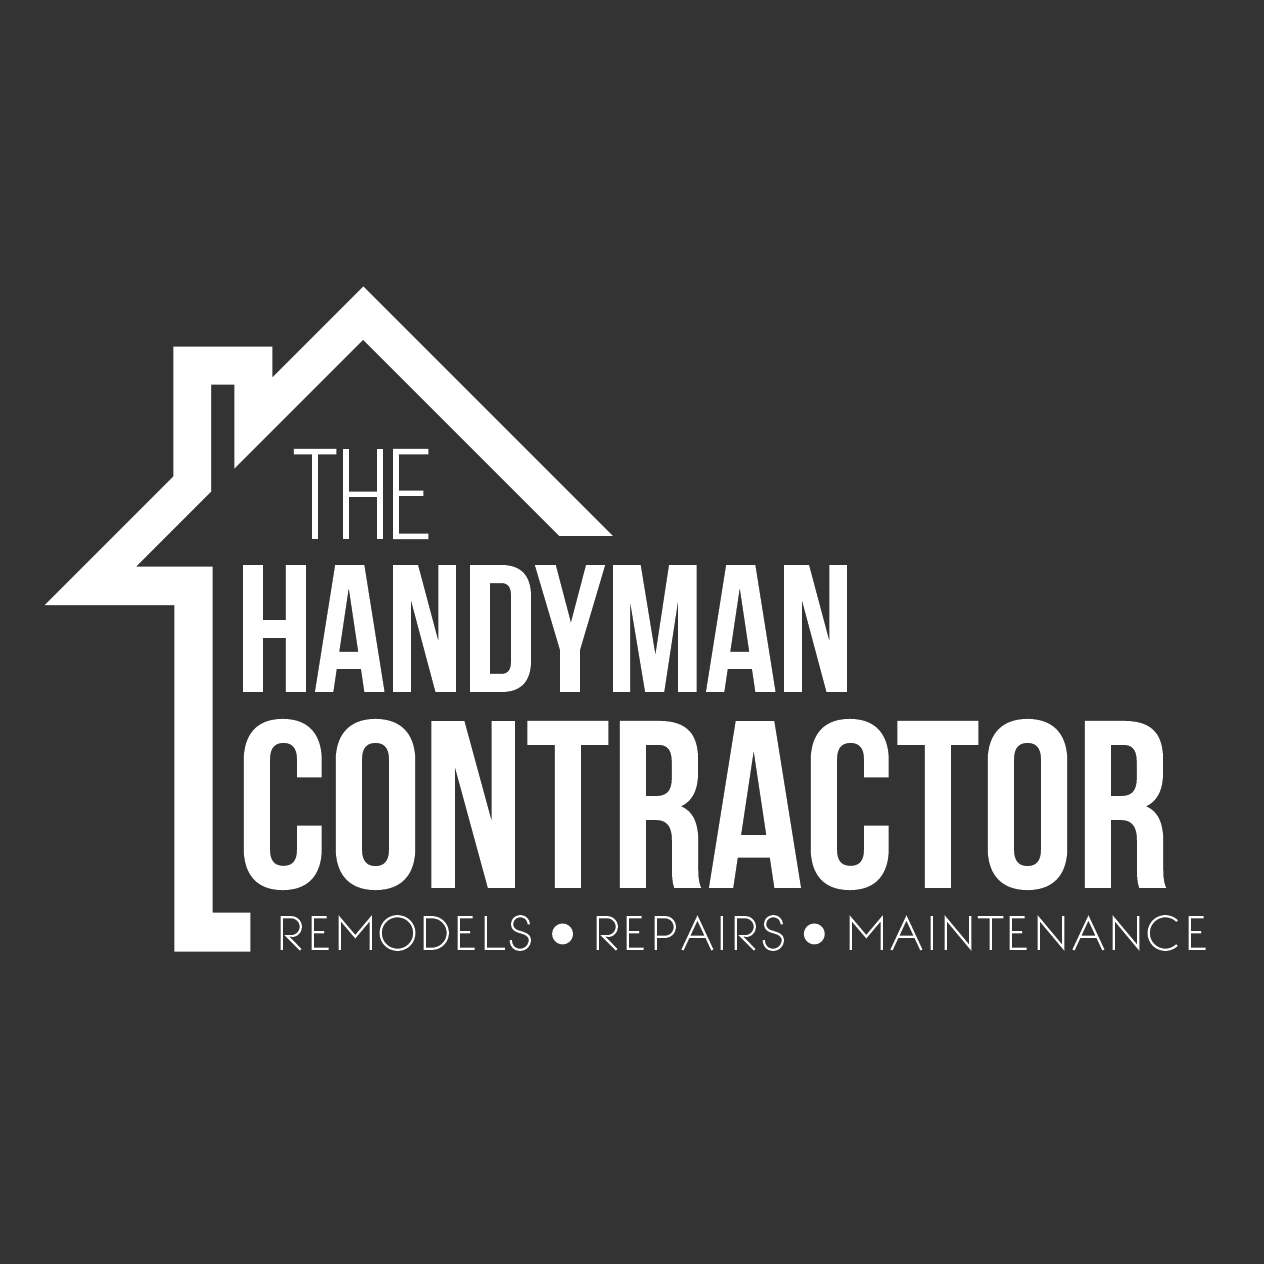 Logo Design For Home Improvement Company. #logo